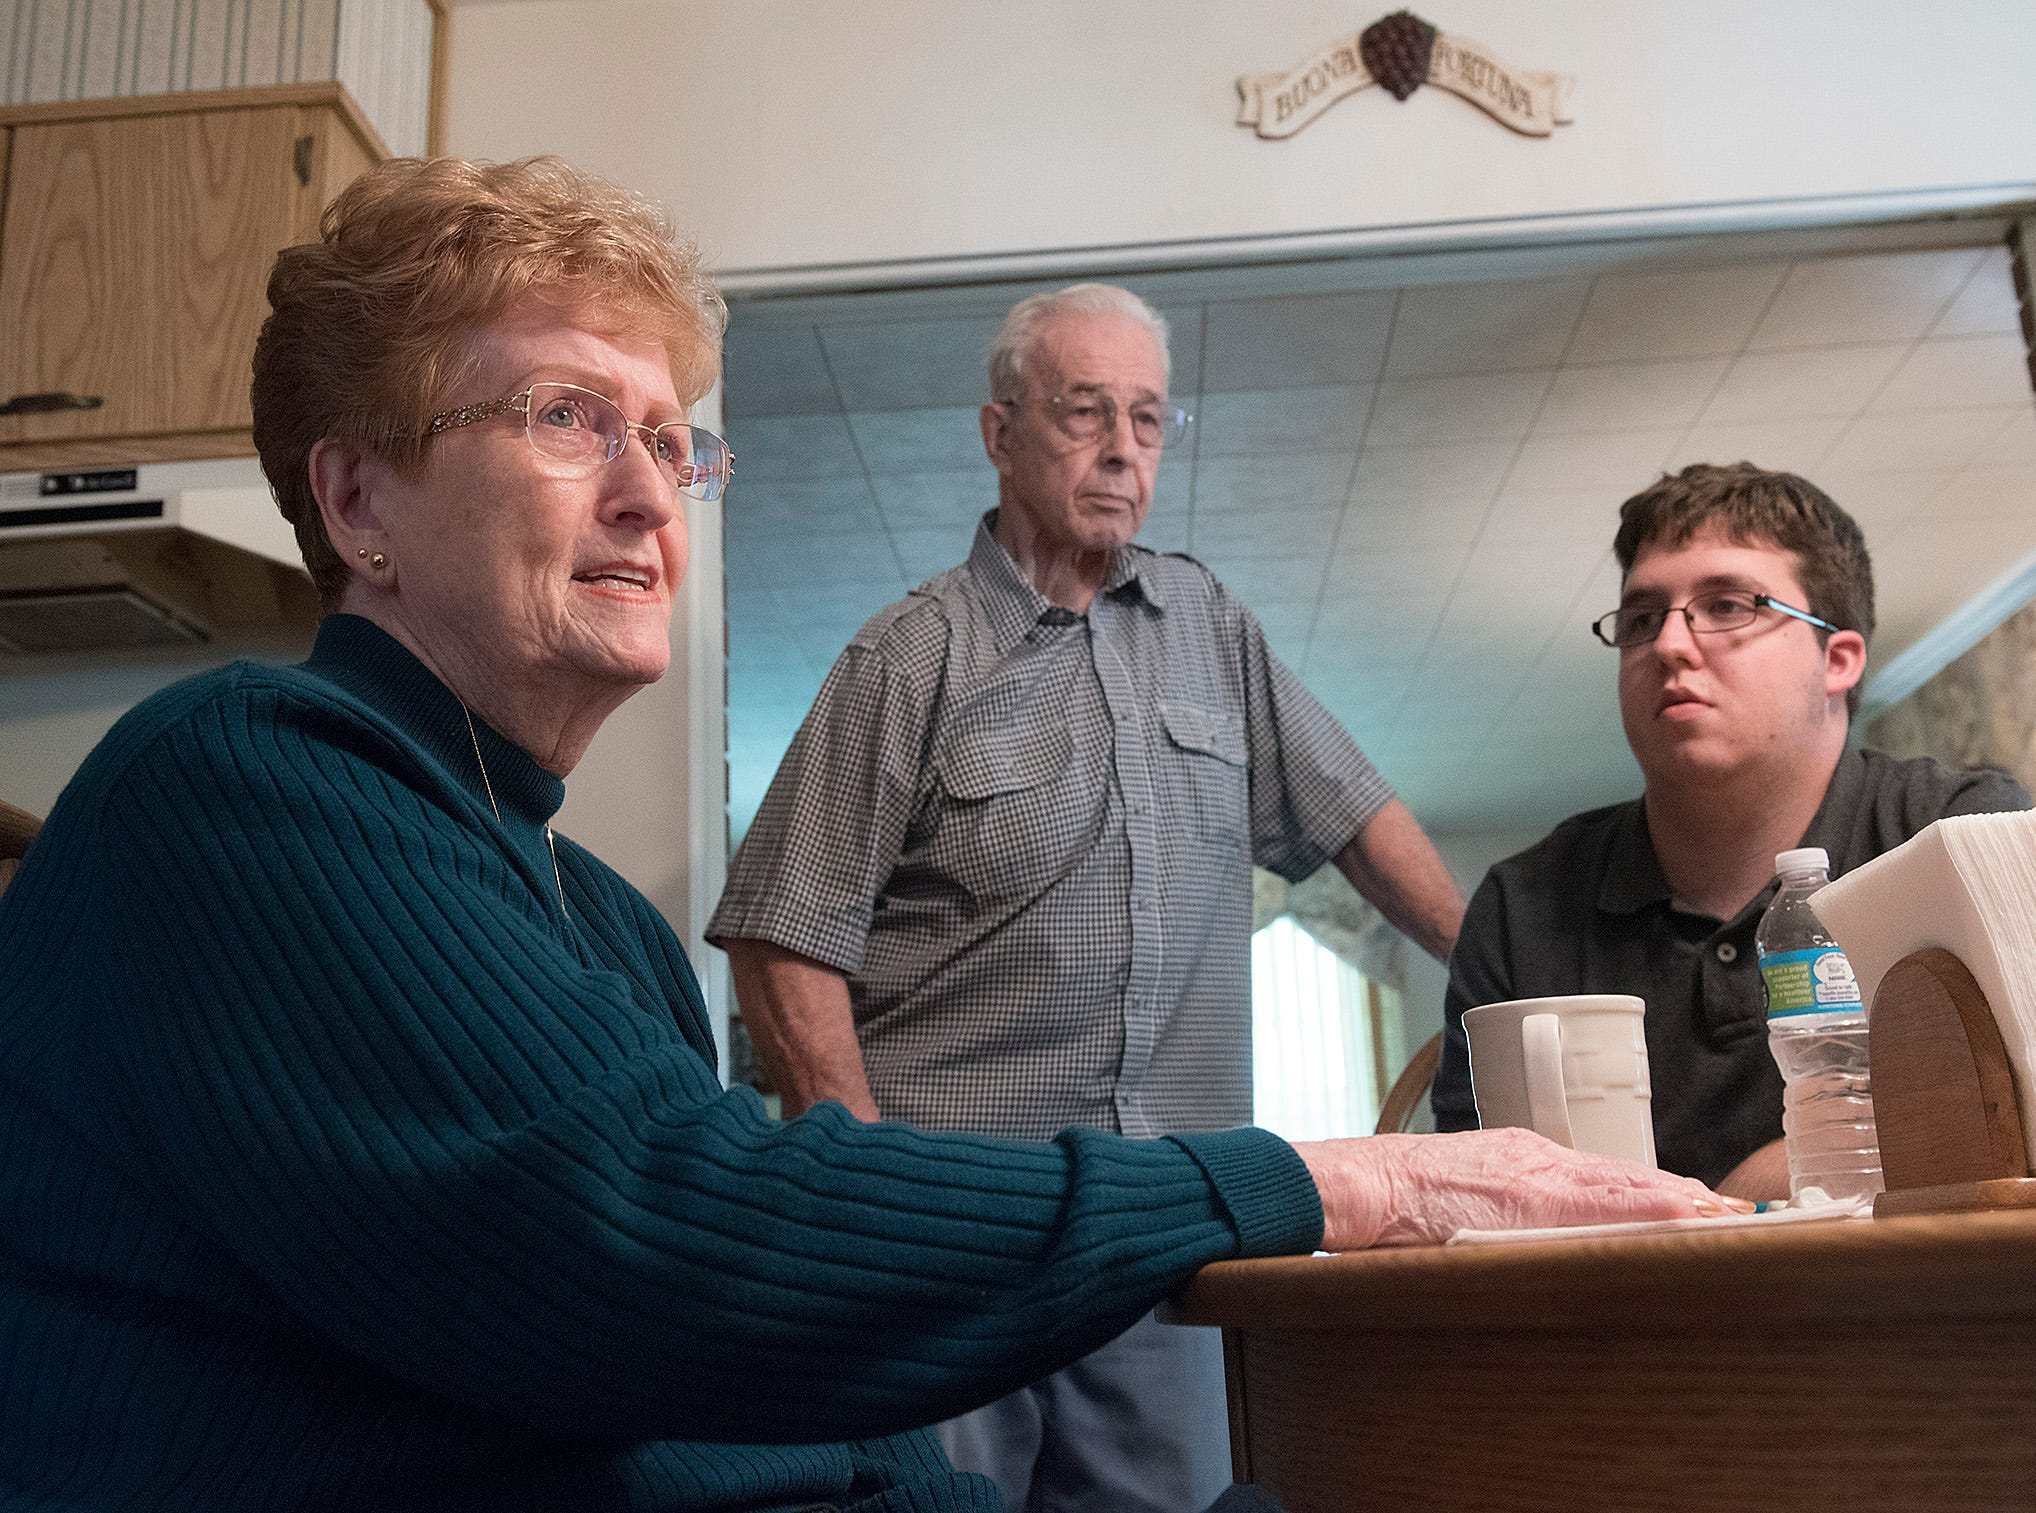 All in the family: Westland woman, grandson ready for midterm duty